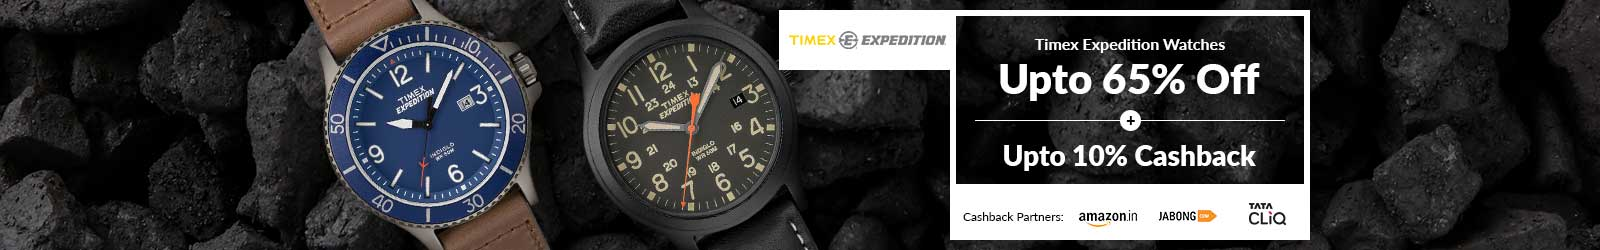 2ee8a798671f Timex Expedition Price List India  67% Off Offers